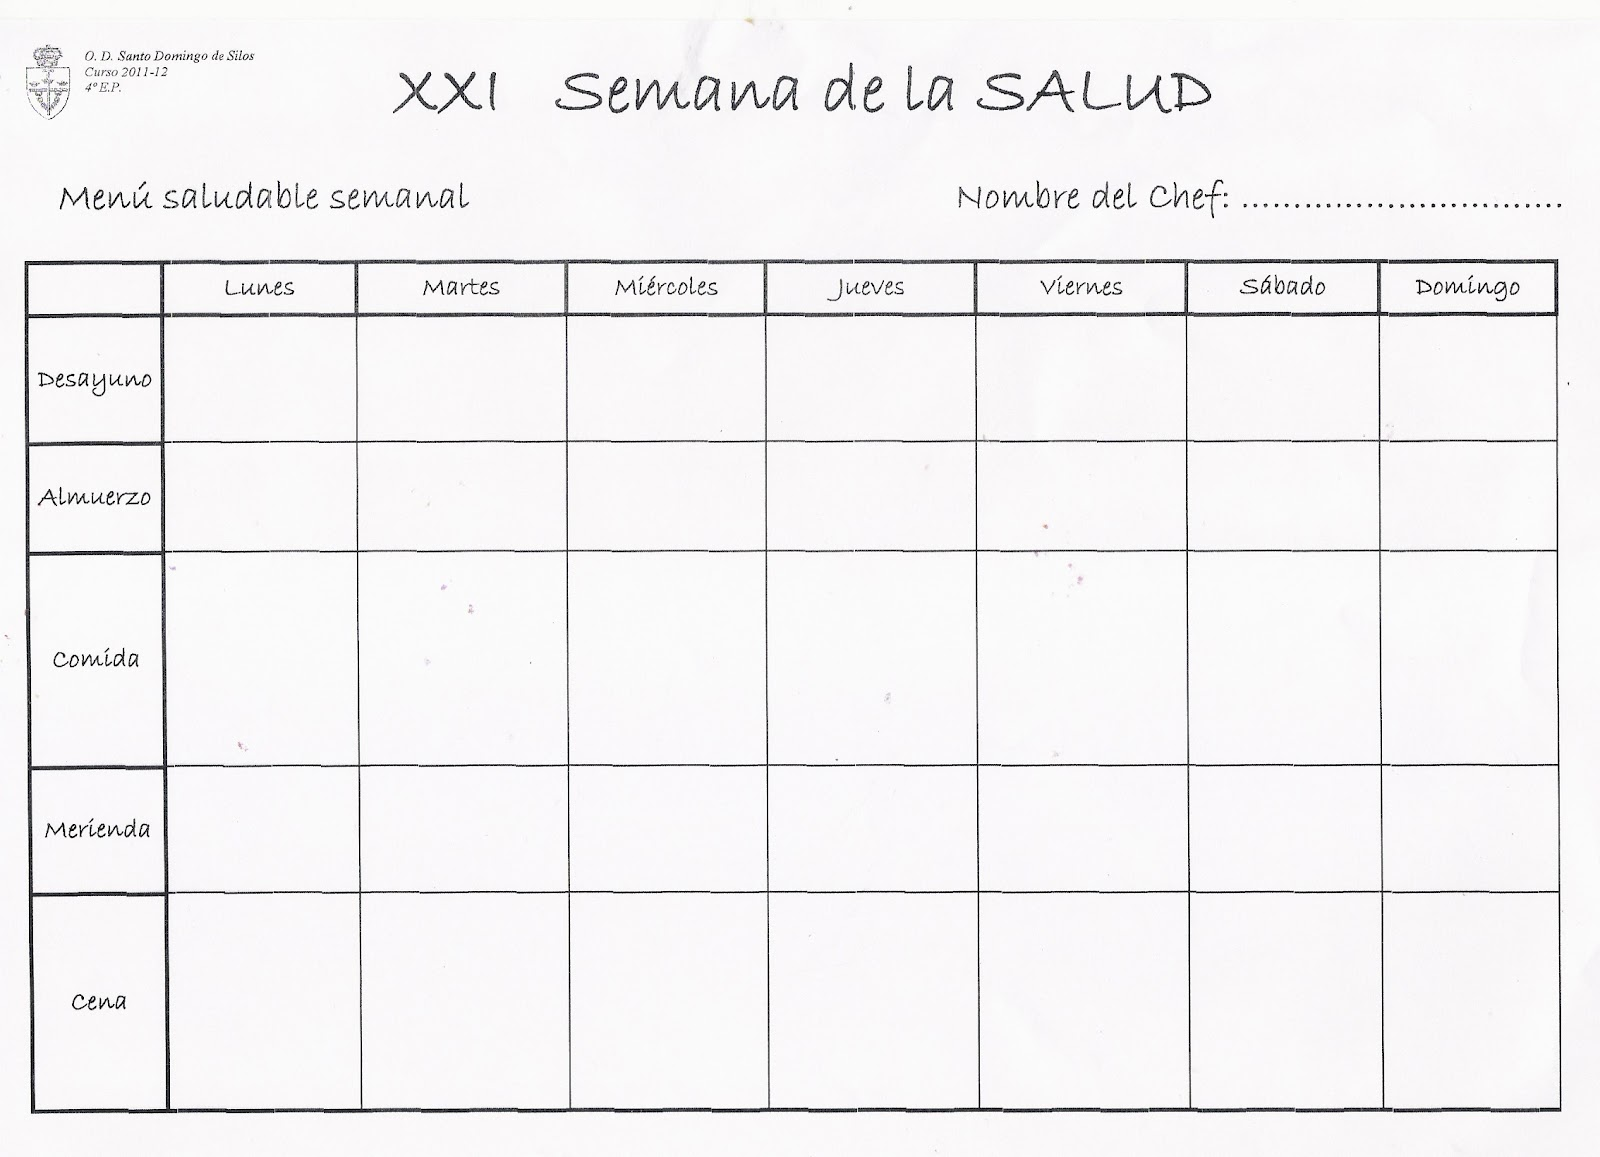 Nuestra nave tic men saludable semanal for Planning semanal comidas